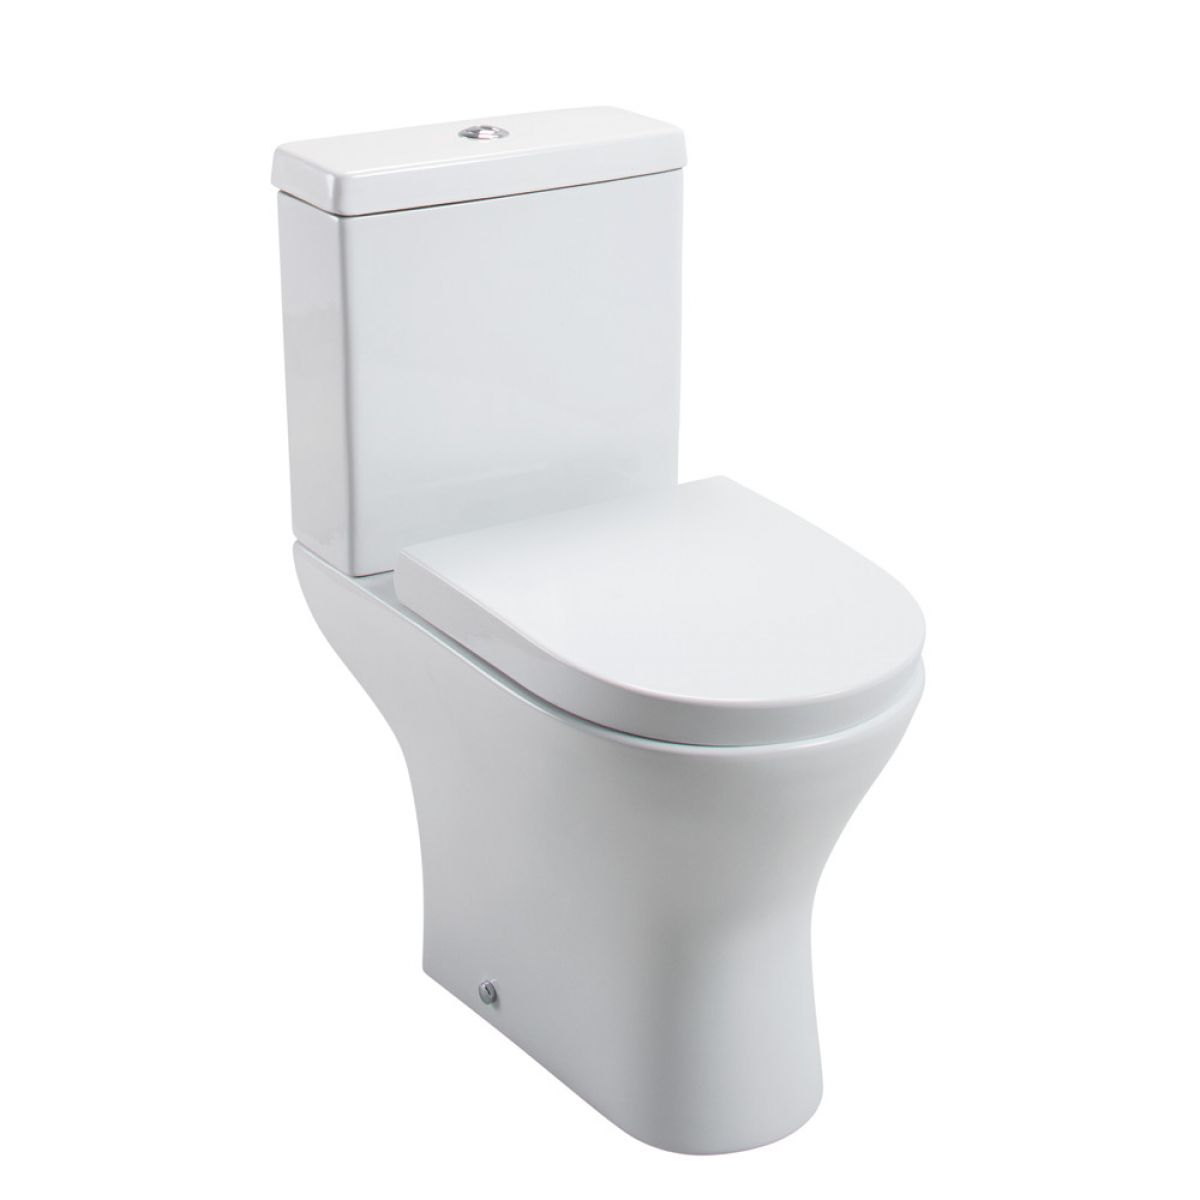 Cassellie Spek Close Coupled Toilet Wrapover Seat